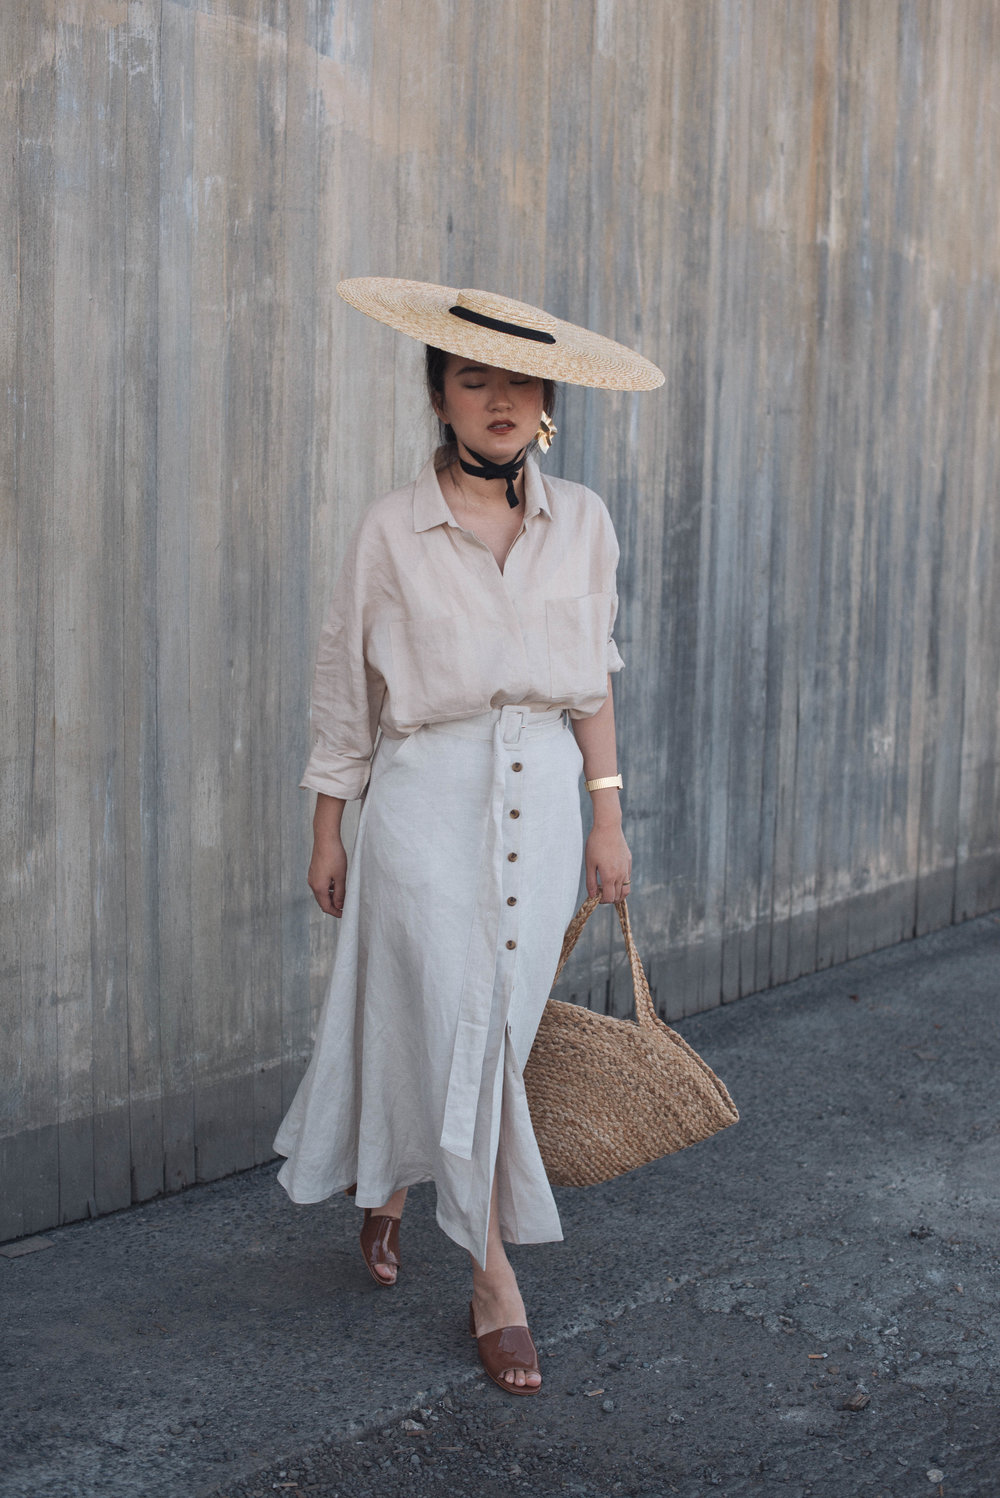 Hat - Jacquemus / Earring - Low Classic / Shirt & Skirt - unknown / Bag - unknown / Shoes - Maryam Nassir Zadeh